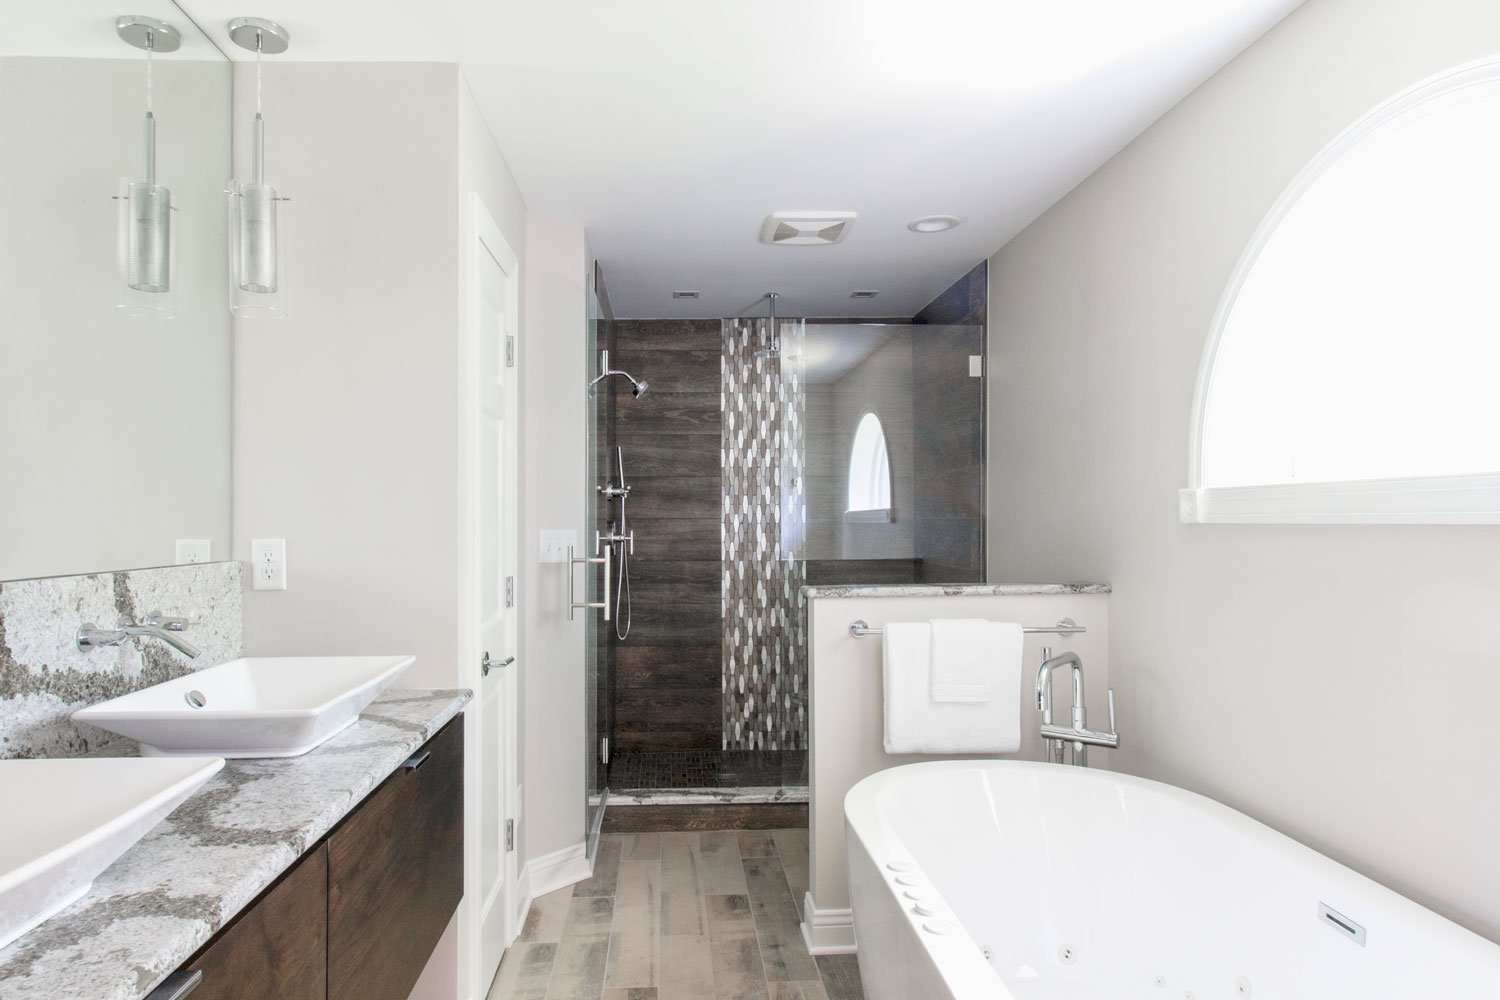 Spa-like master bathroom with walk in glass shower